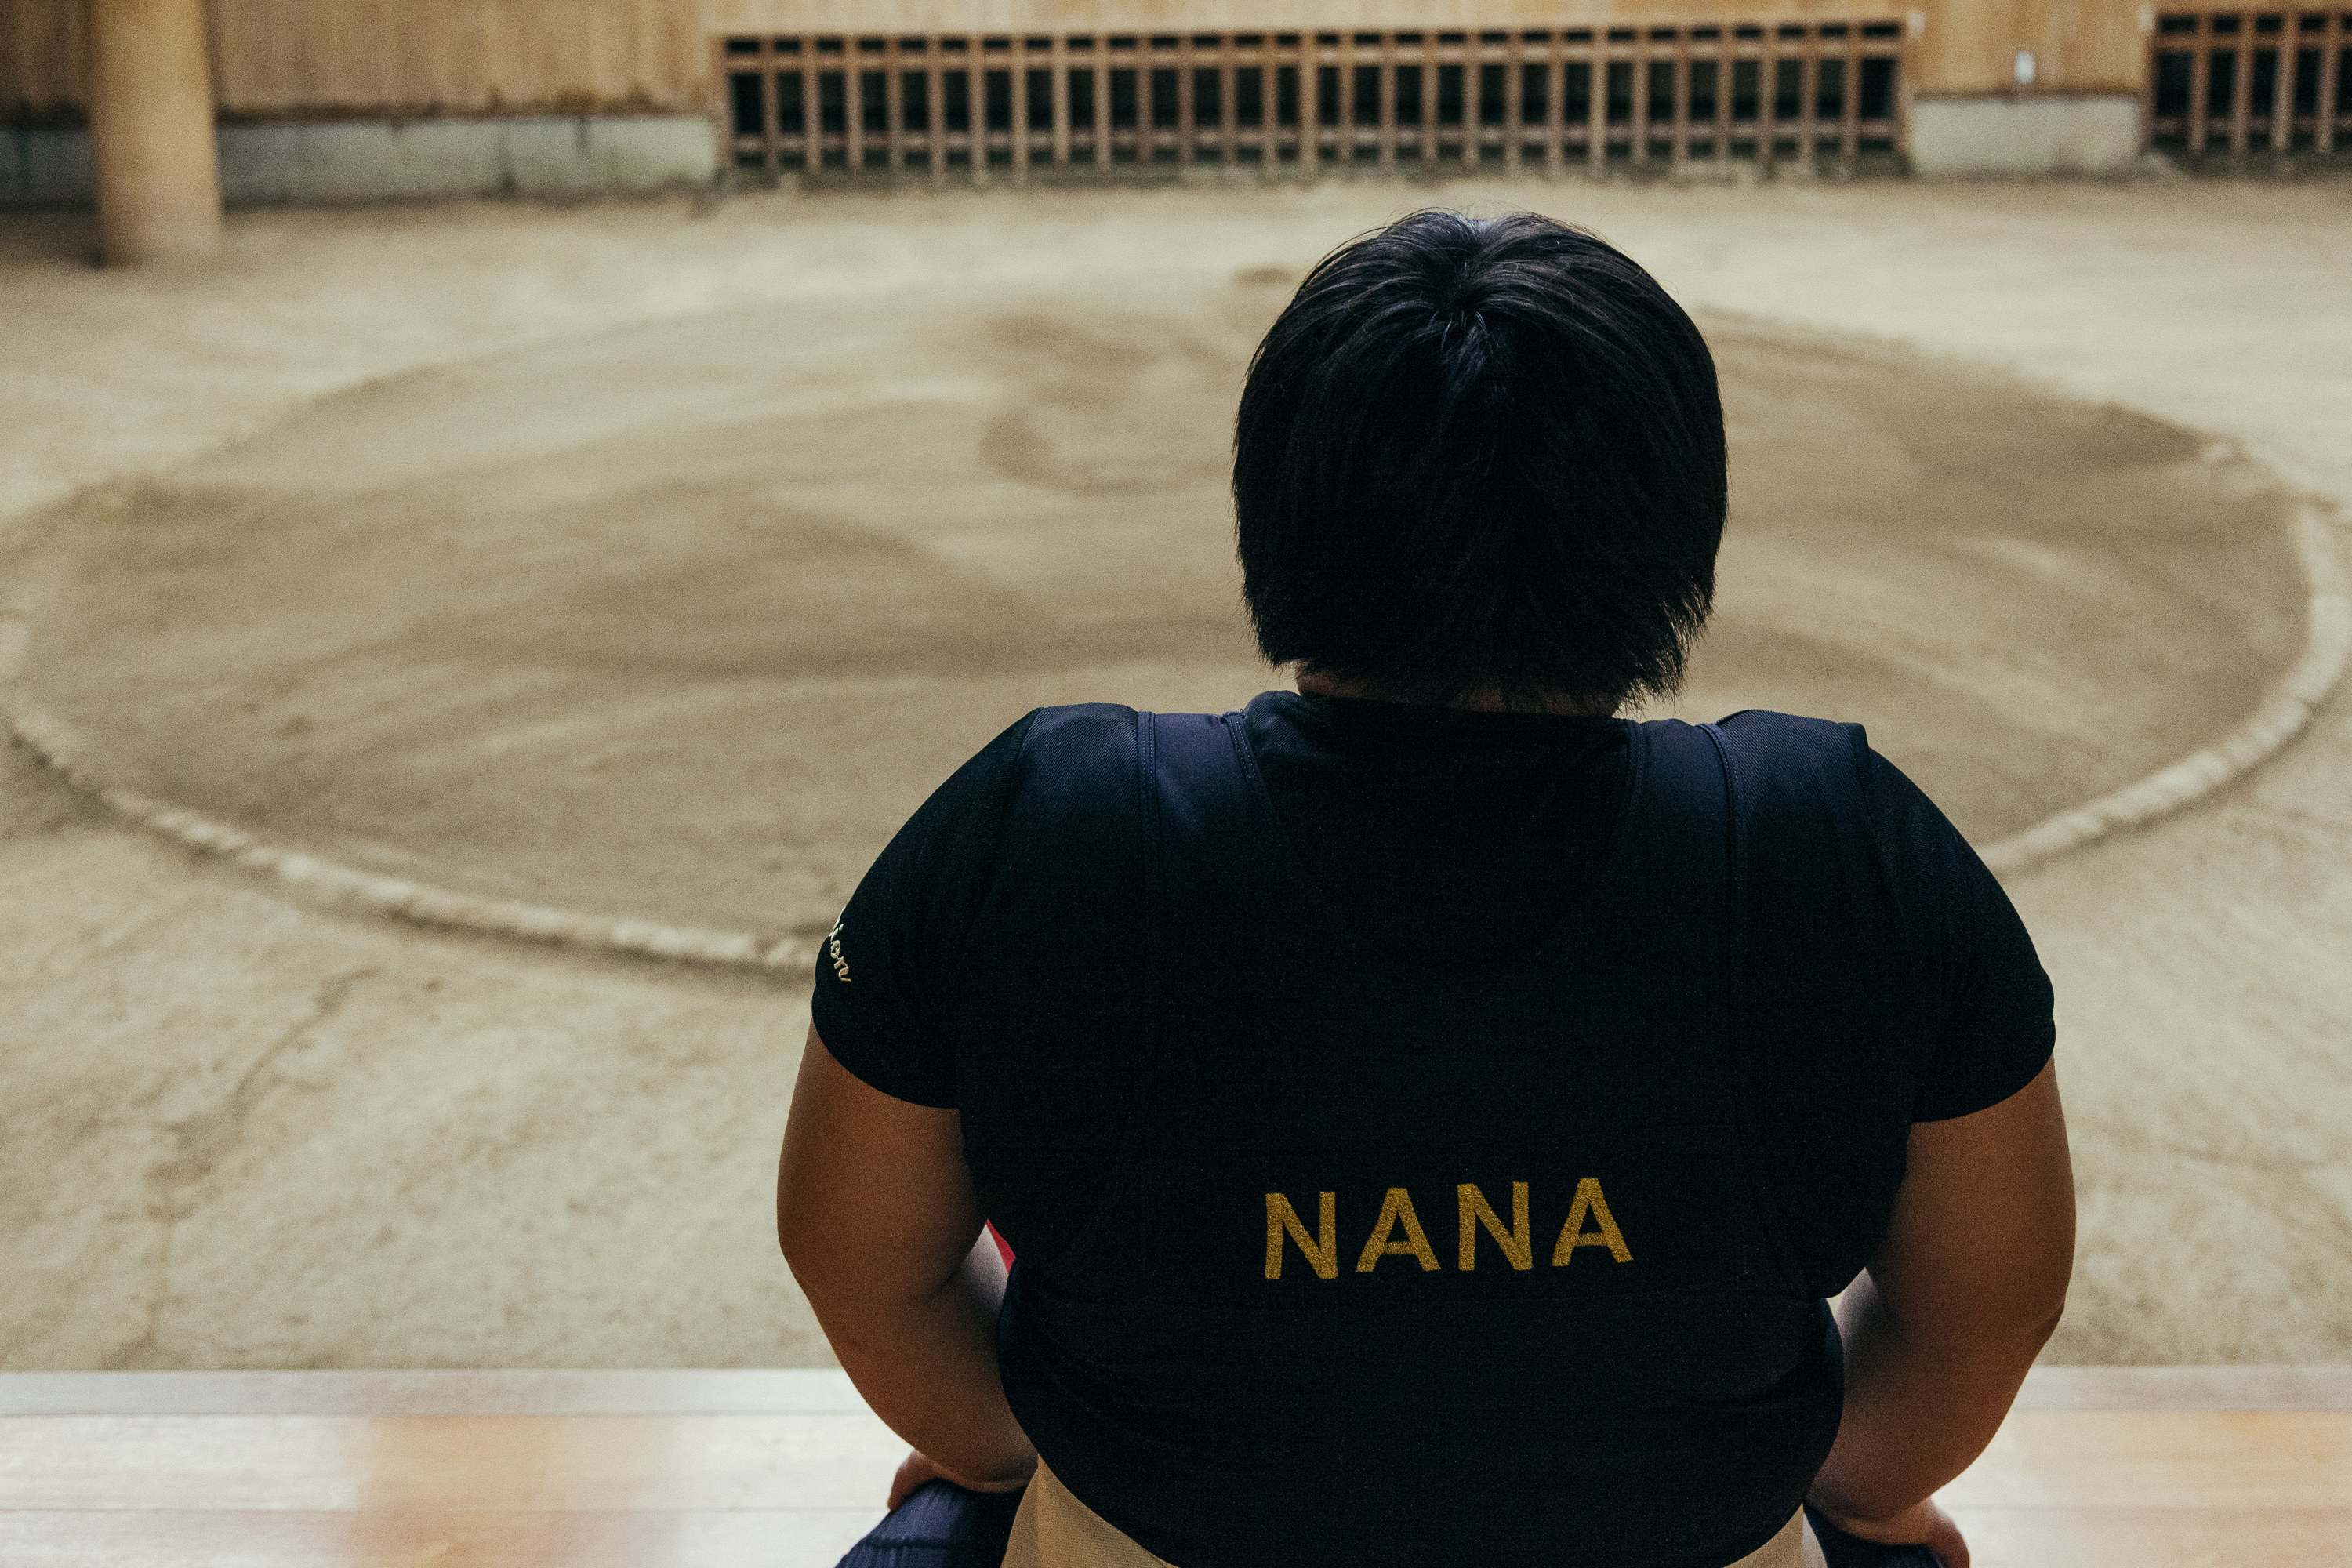 A young girl at the edge of a sumo practice ring wearing a shirt with her name on it, Nana